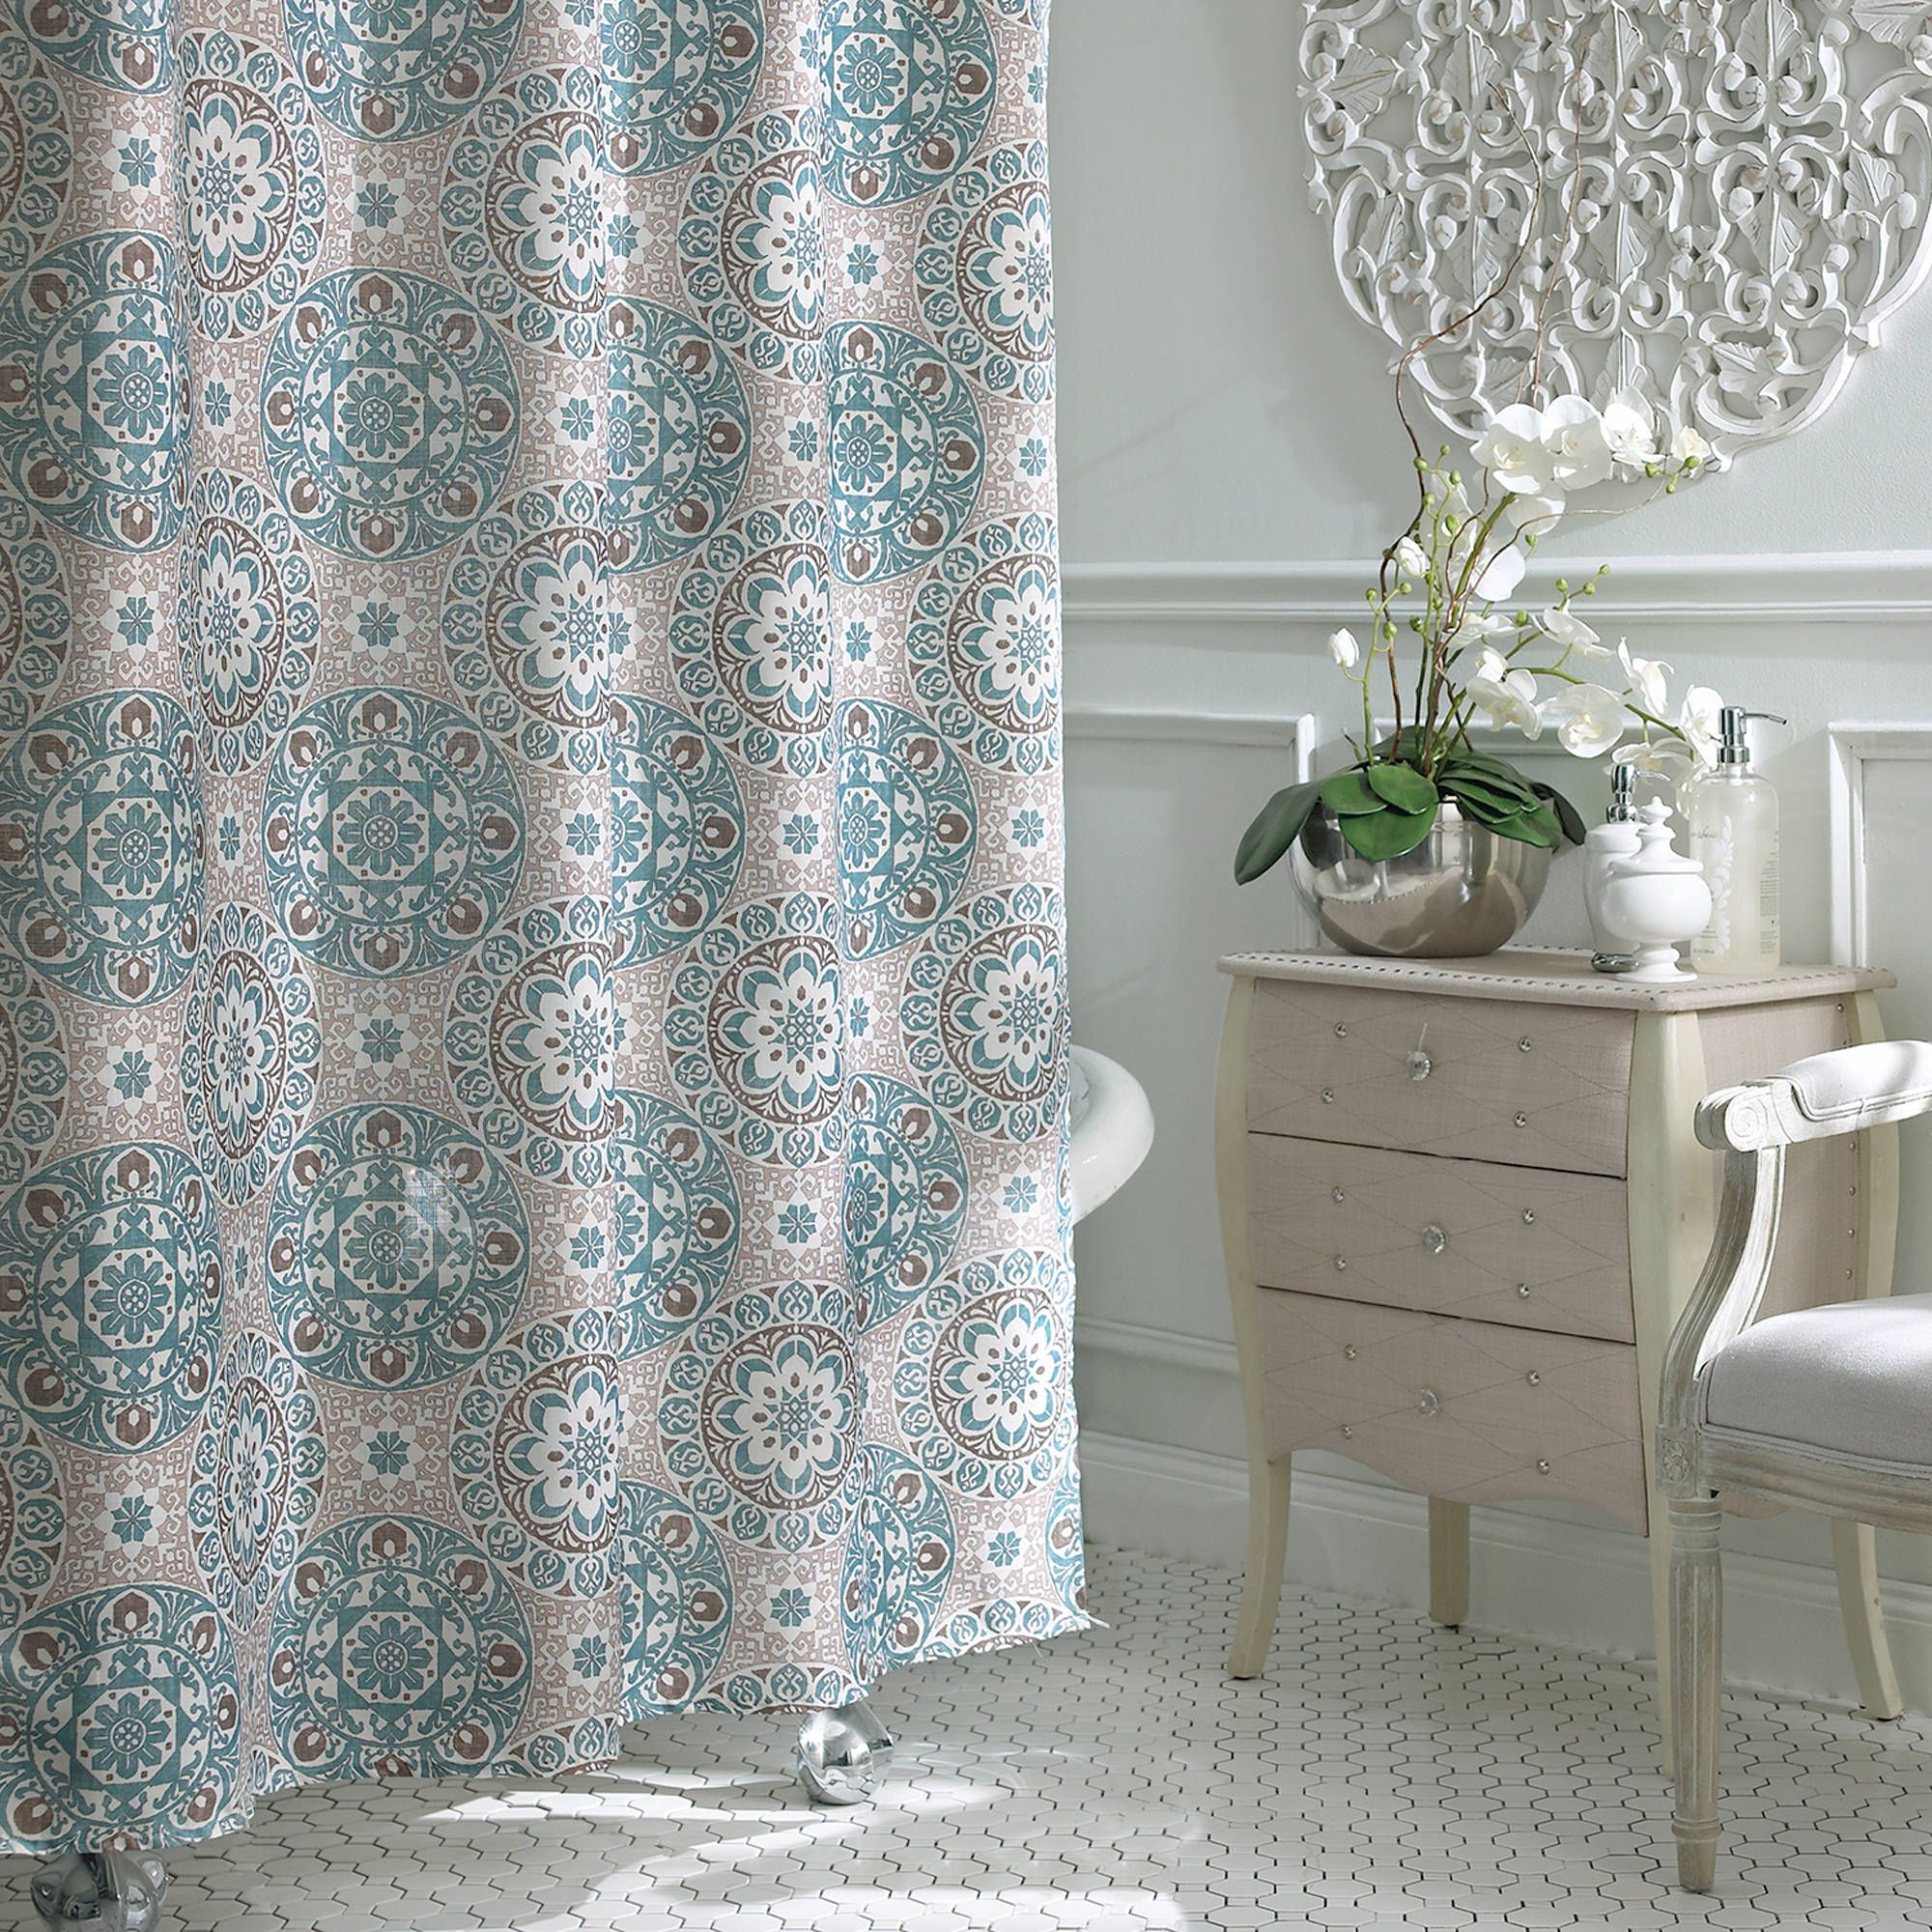 Excell Carthe Fabric Shower Curtain - Walmart.com | Home- Inside and ...